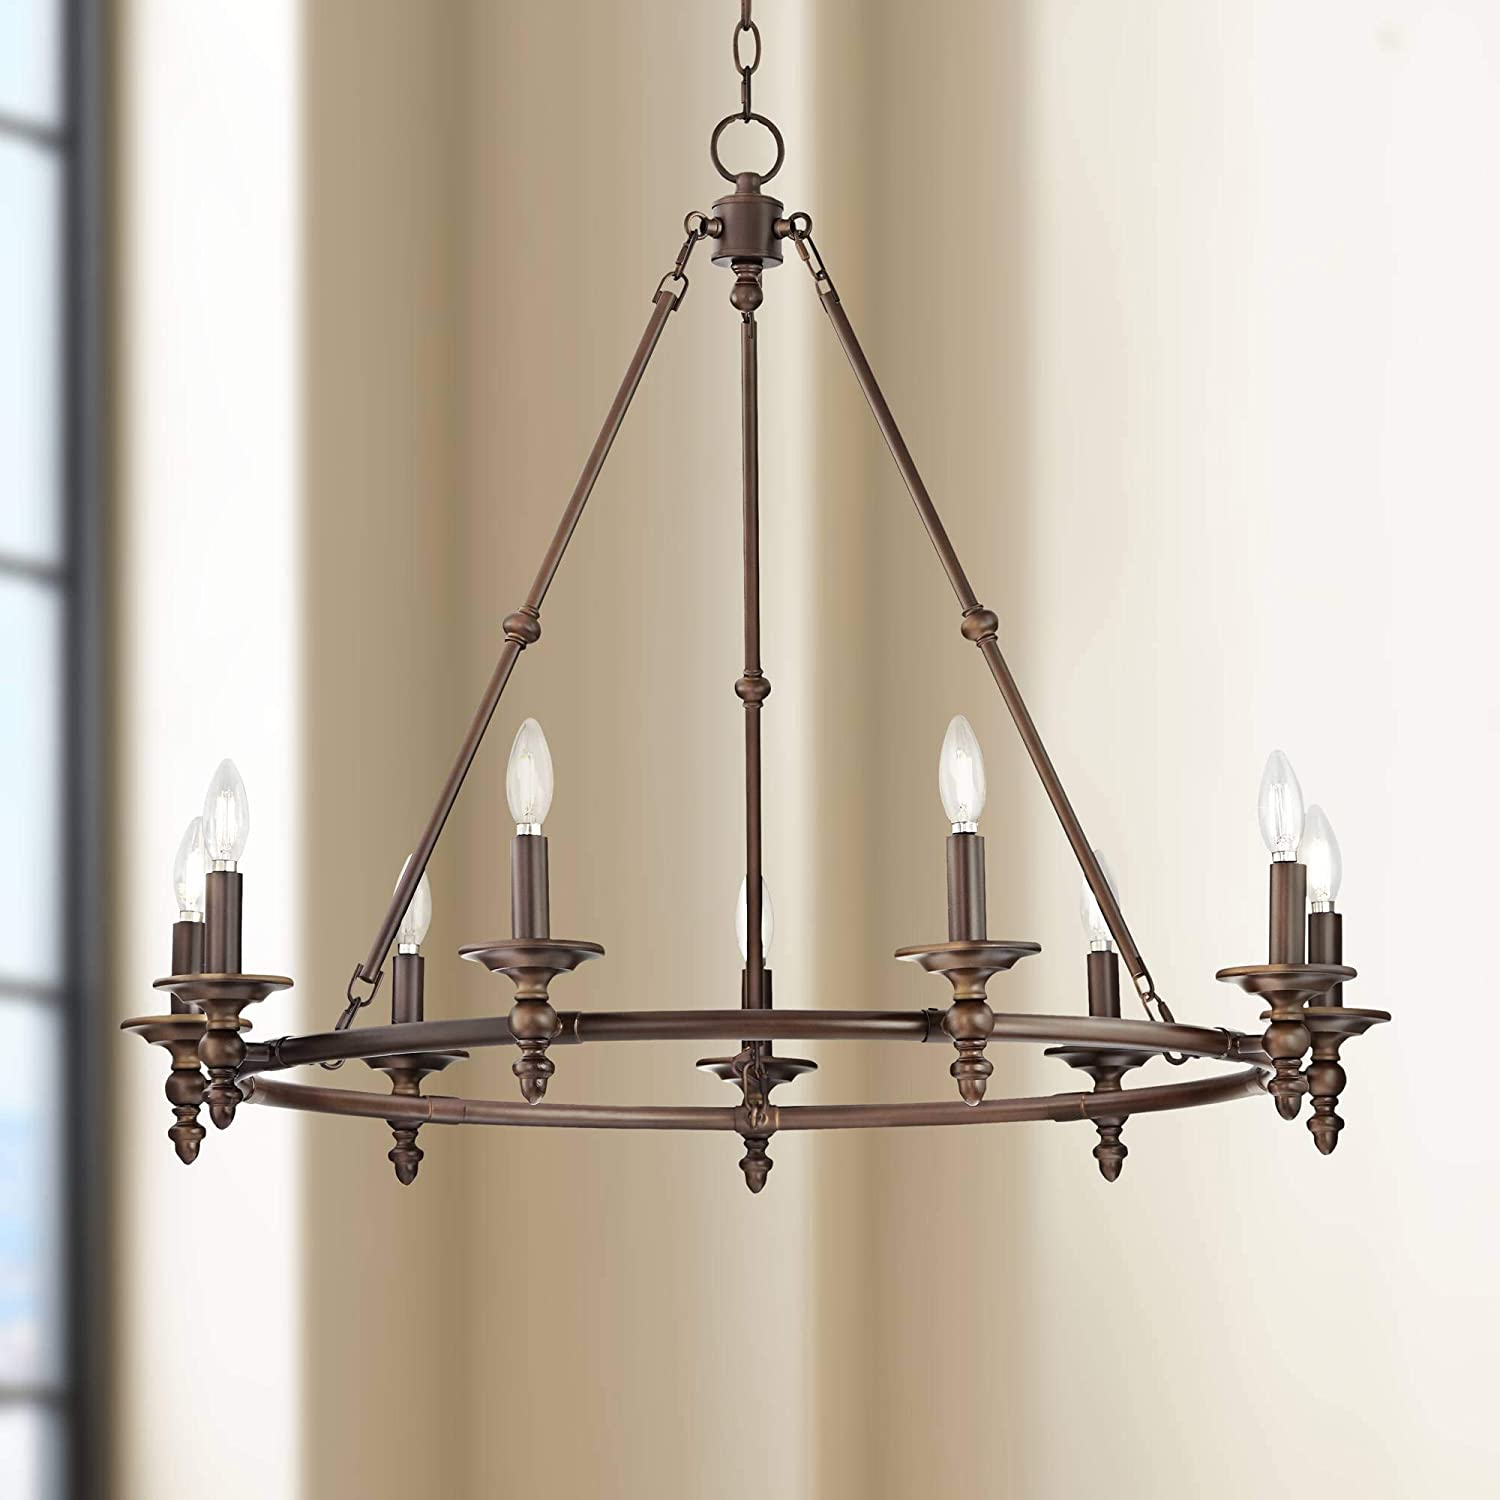 "Hartley Oil Rubbed Bronze Large Wagon Wheel Chandelier 35 1/2"" Wide Rustic Farmhouse 9-Light Fixture For Dining Room House Foyer Kitchen Island Entryway Bedroom Living Room - Franklin Iron Works"